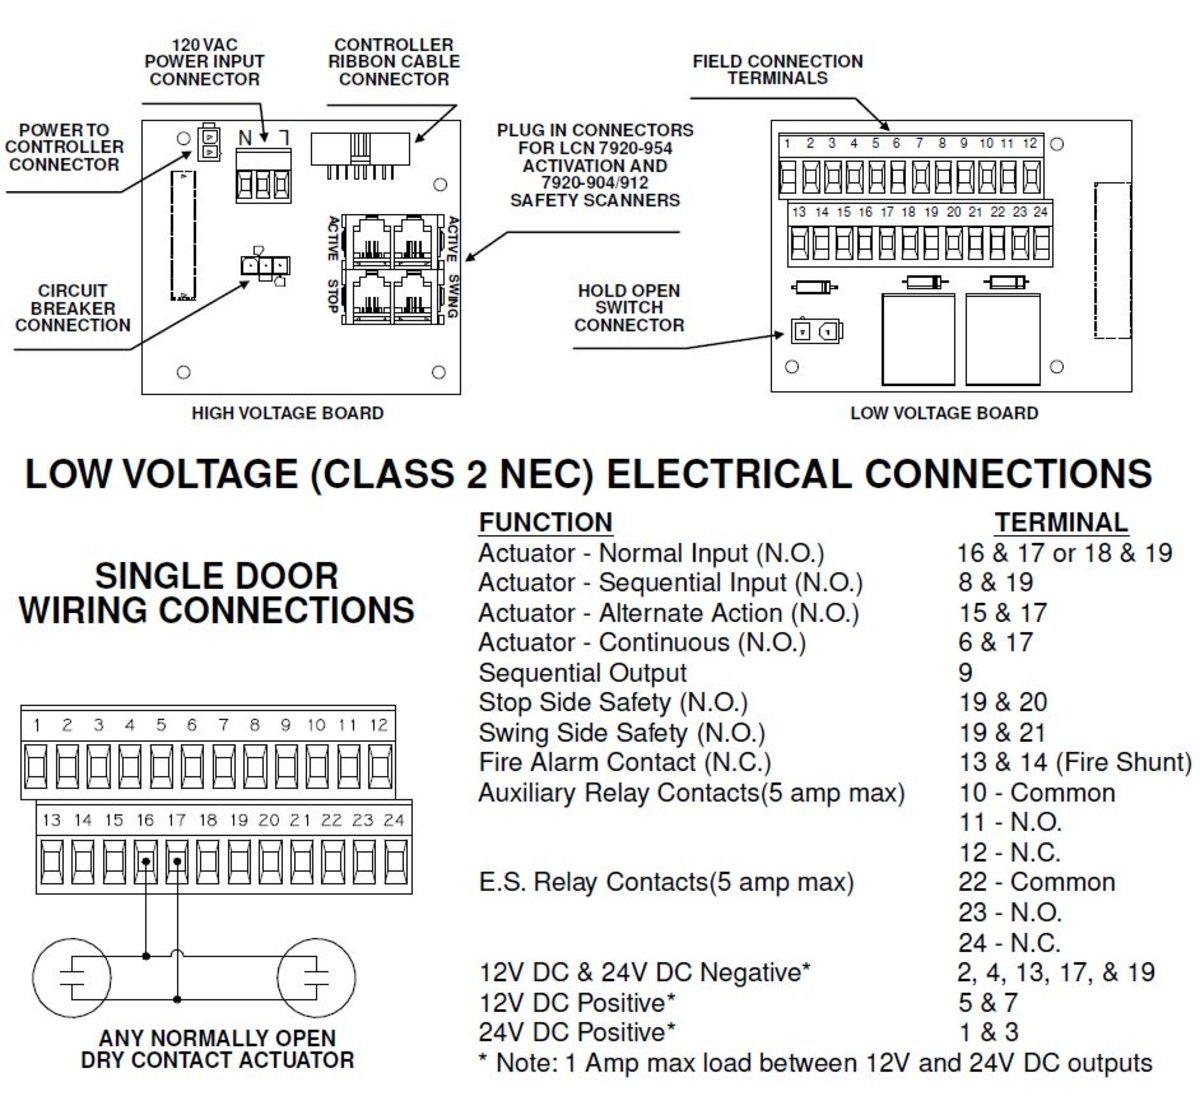 Excerpted from LCN 4630/4630 series installation instructions.